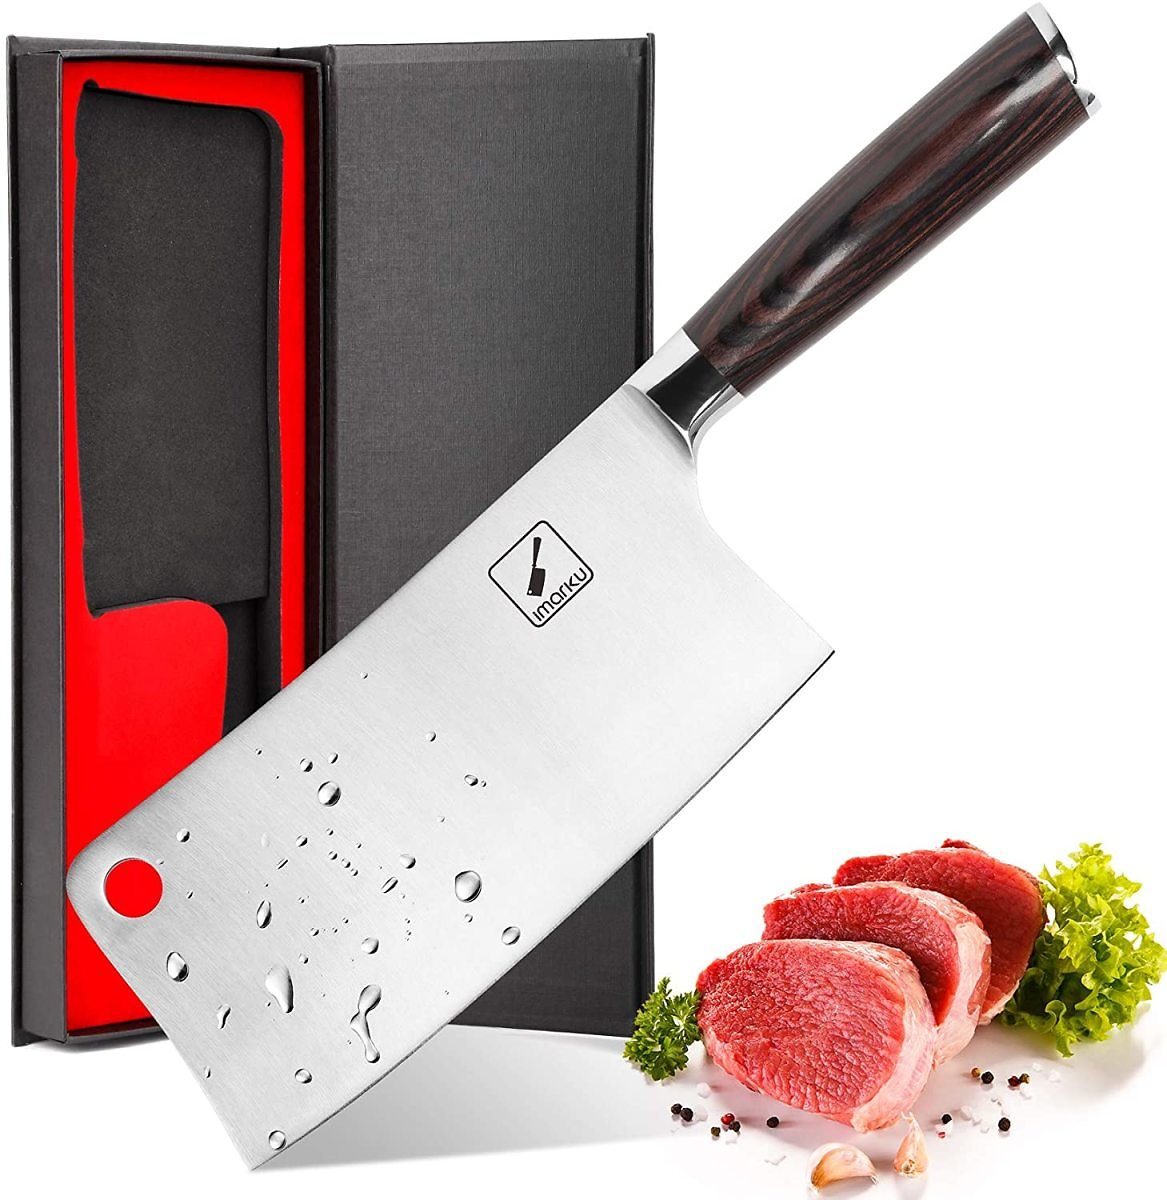 45% OFF - Imarku Cleaver Knife 7 Inch German High Carbon Stainless Steel Chopper Knife for Home Kitchen